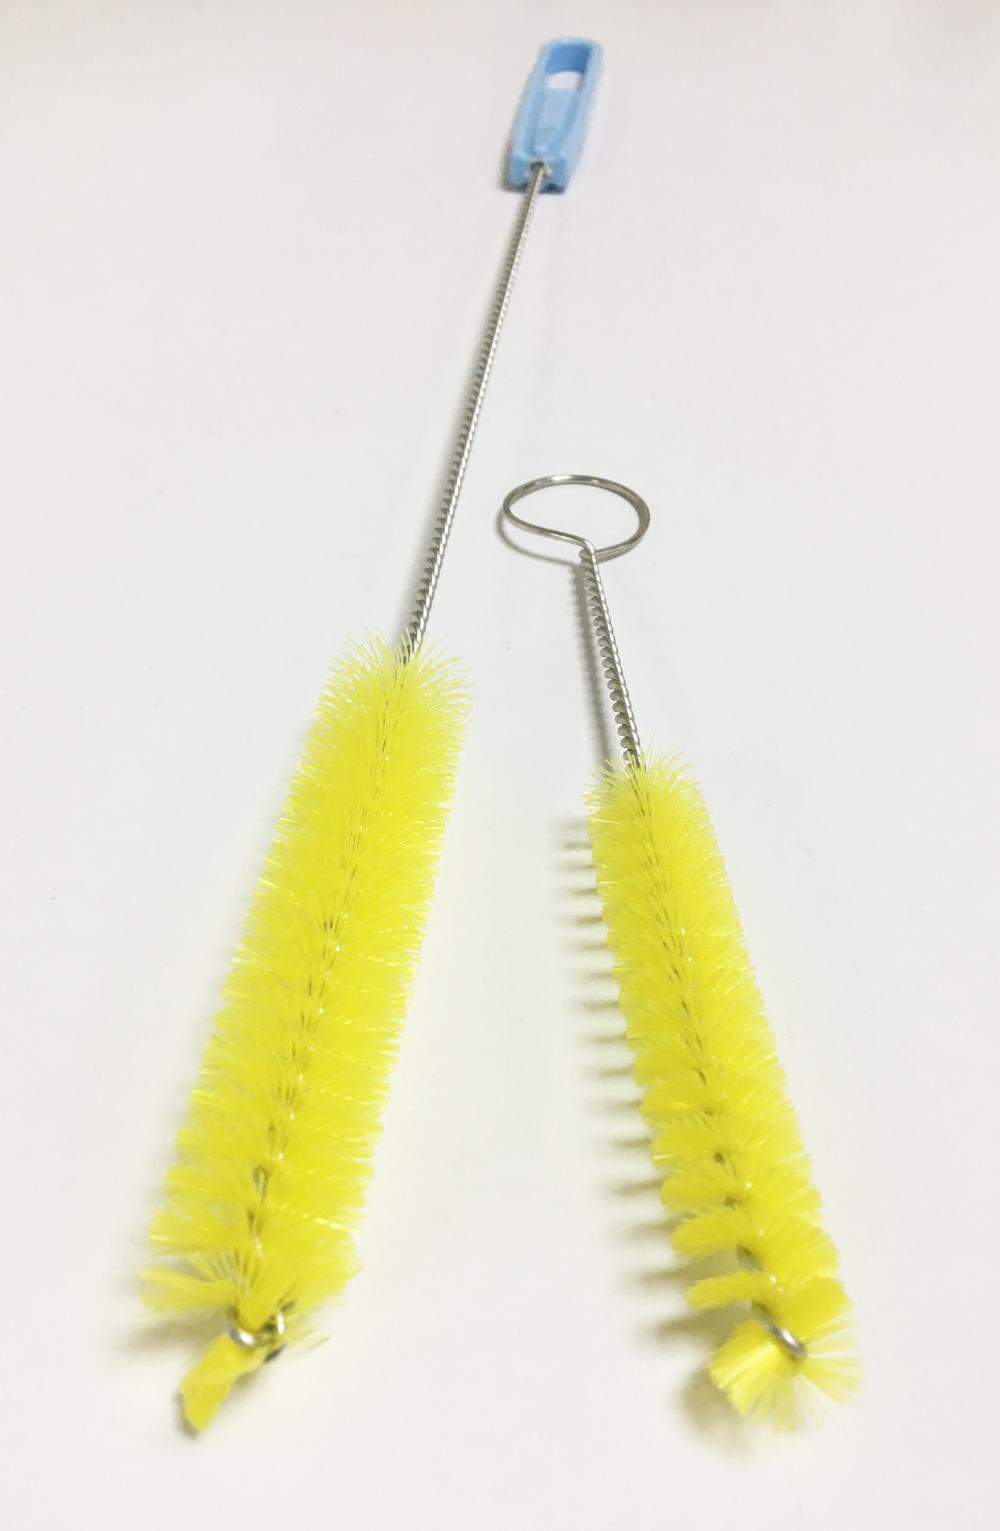 Percell Tube Tube Brush - Set di 2